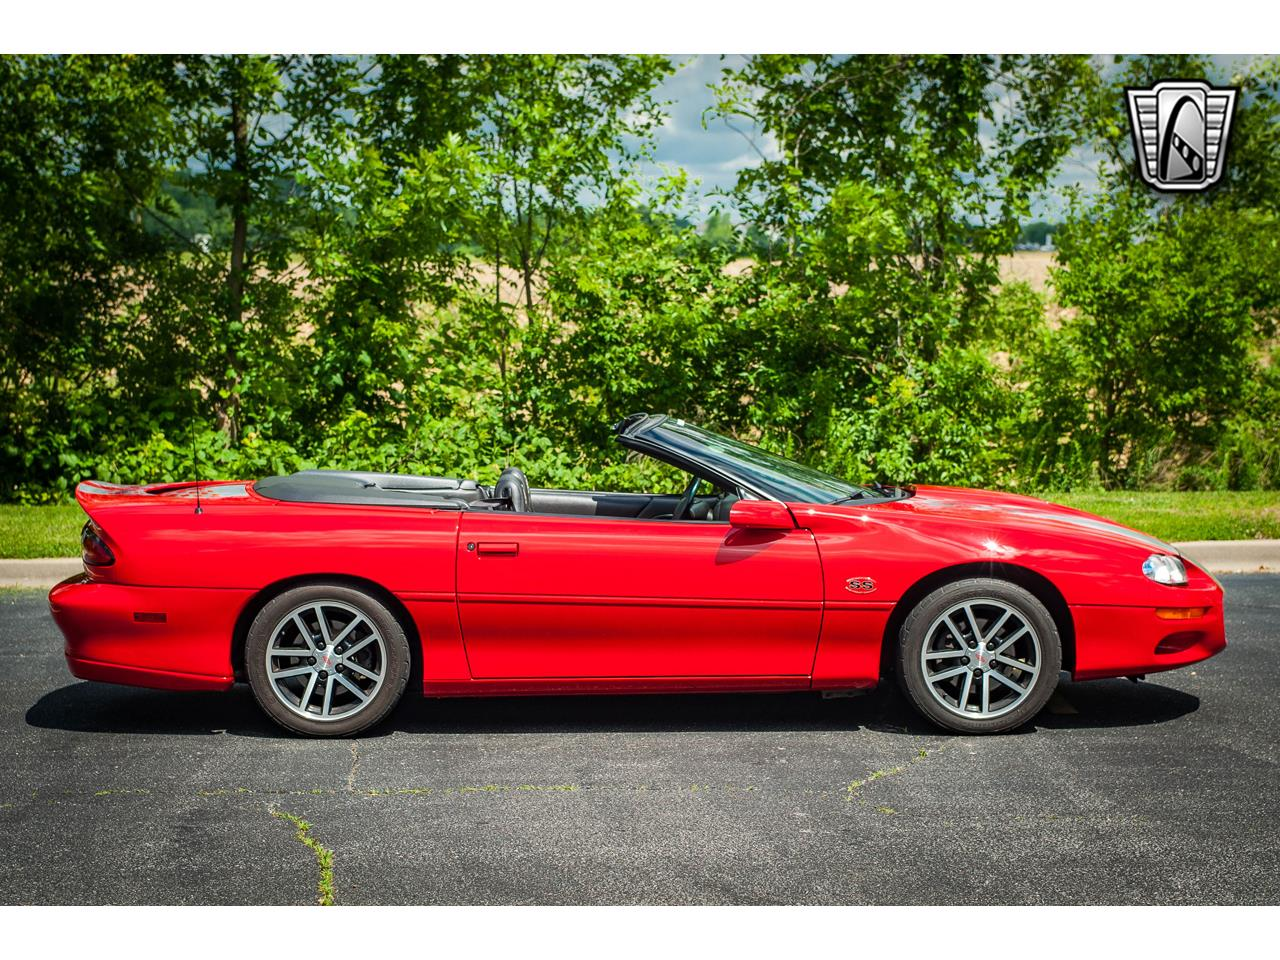 Large Picture of '02 Camaro located in O'Fallon Illinois - $33,500.00 Offered by Gateway Classic Cars - St. Louis - QB9Z